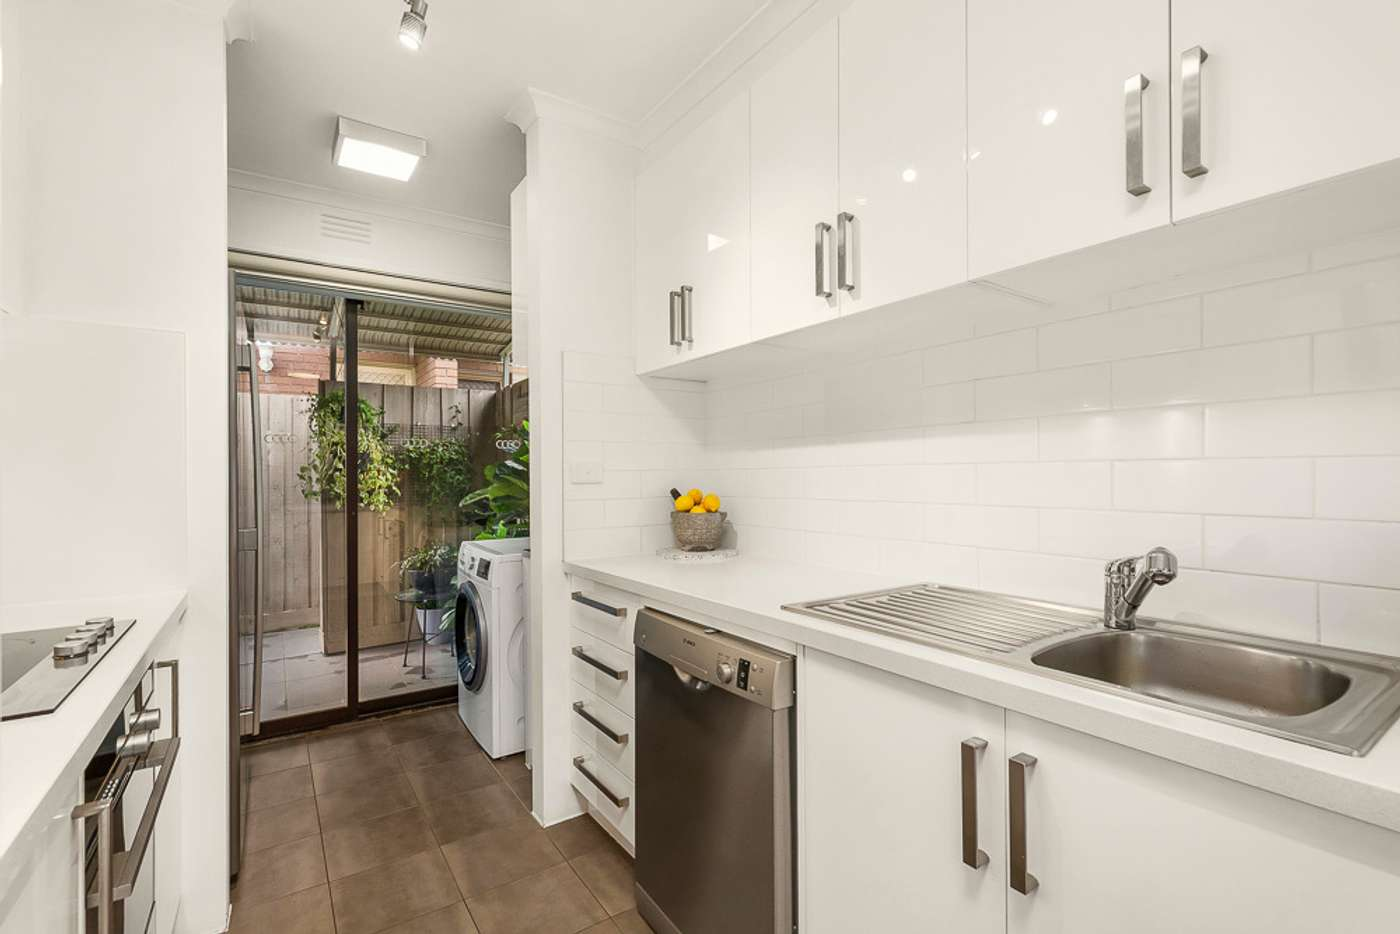 Fifth view of Homely townhouse listing, 5/57 Buckley Street, Moonee Ponds VIC 3039